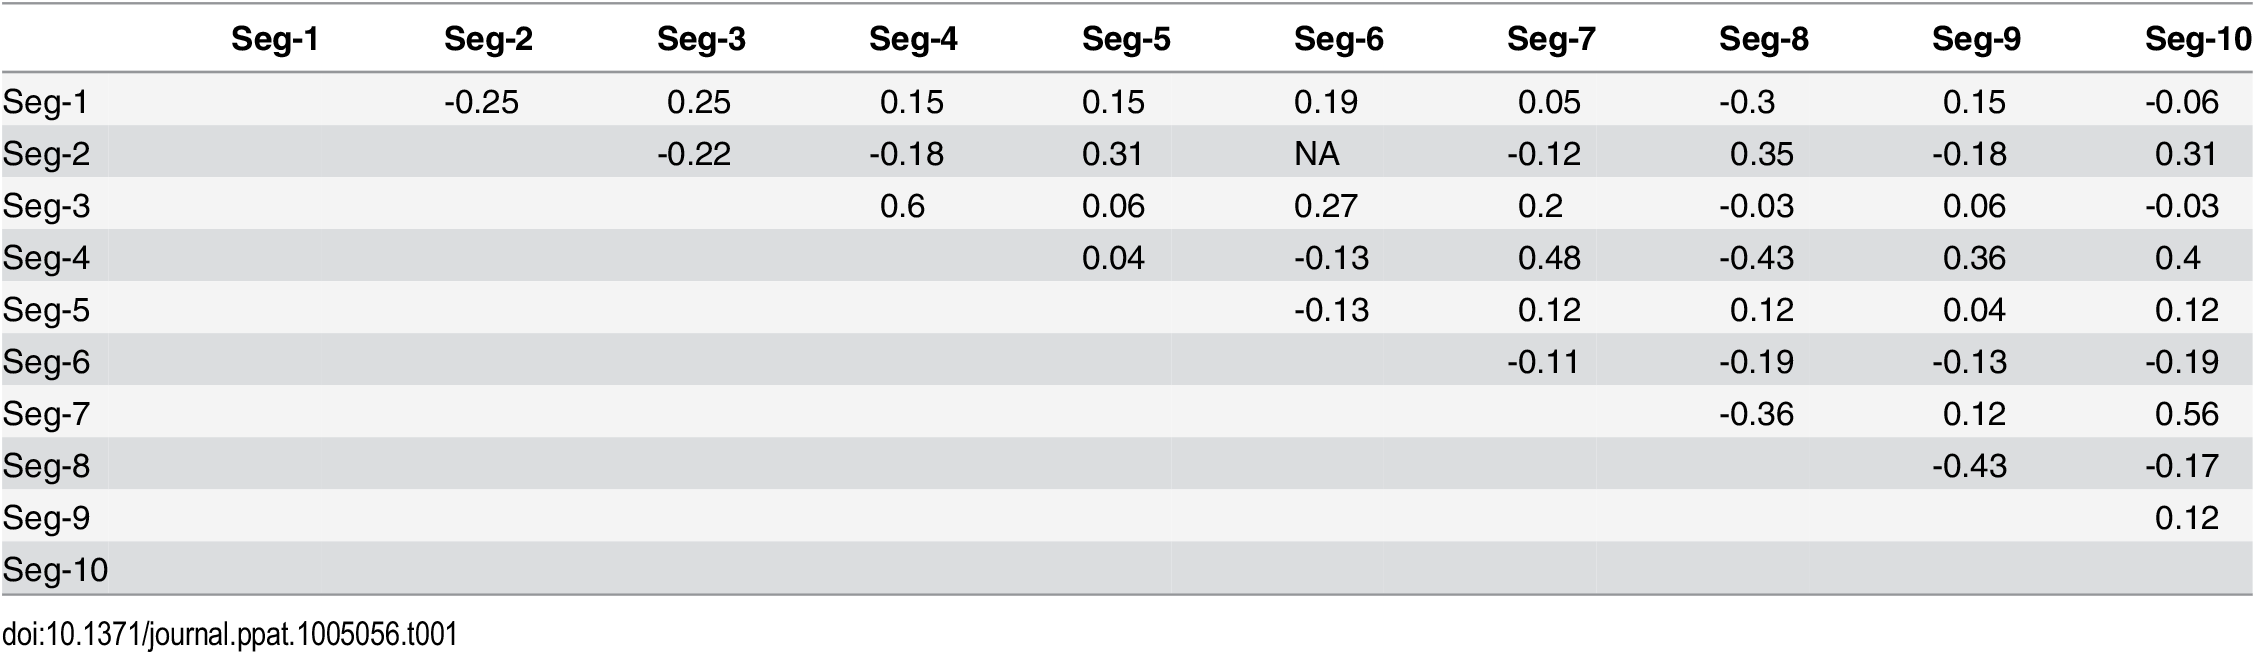 Negative and positive pairwise associations among BTV segments during reassortment.